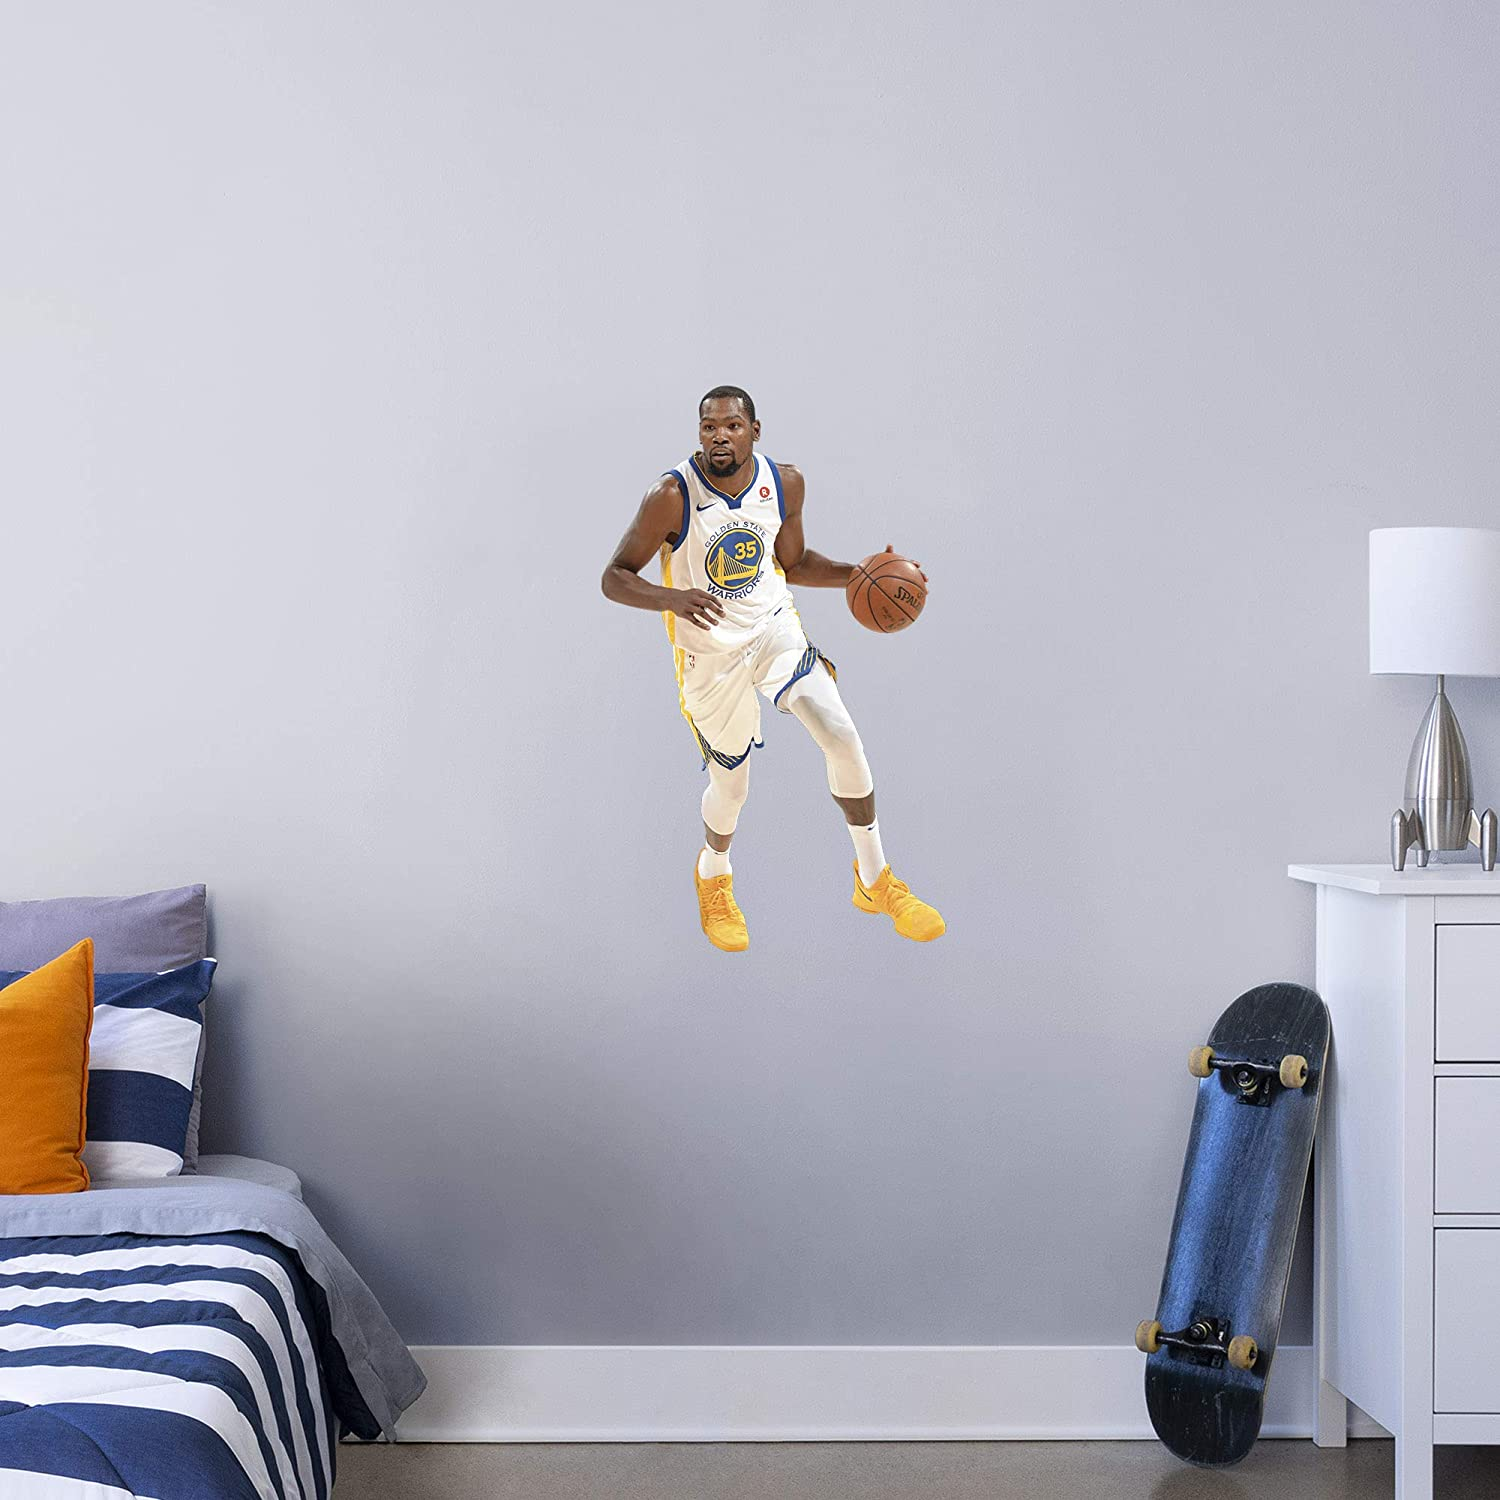 Fathead NBA Golden State Warriors Kevin Durant Kevin Durant- Officially Licensed Removable Wall Decal, Multicolor, X-Large - 1900-00306-004